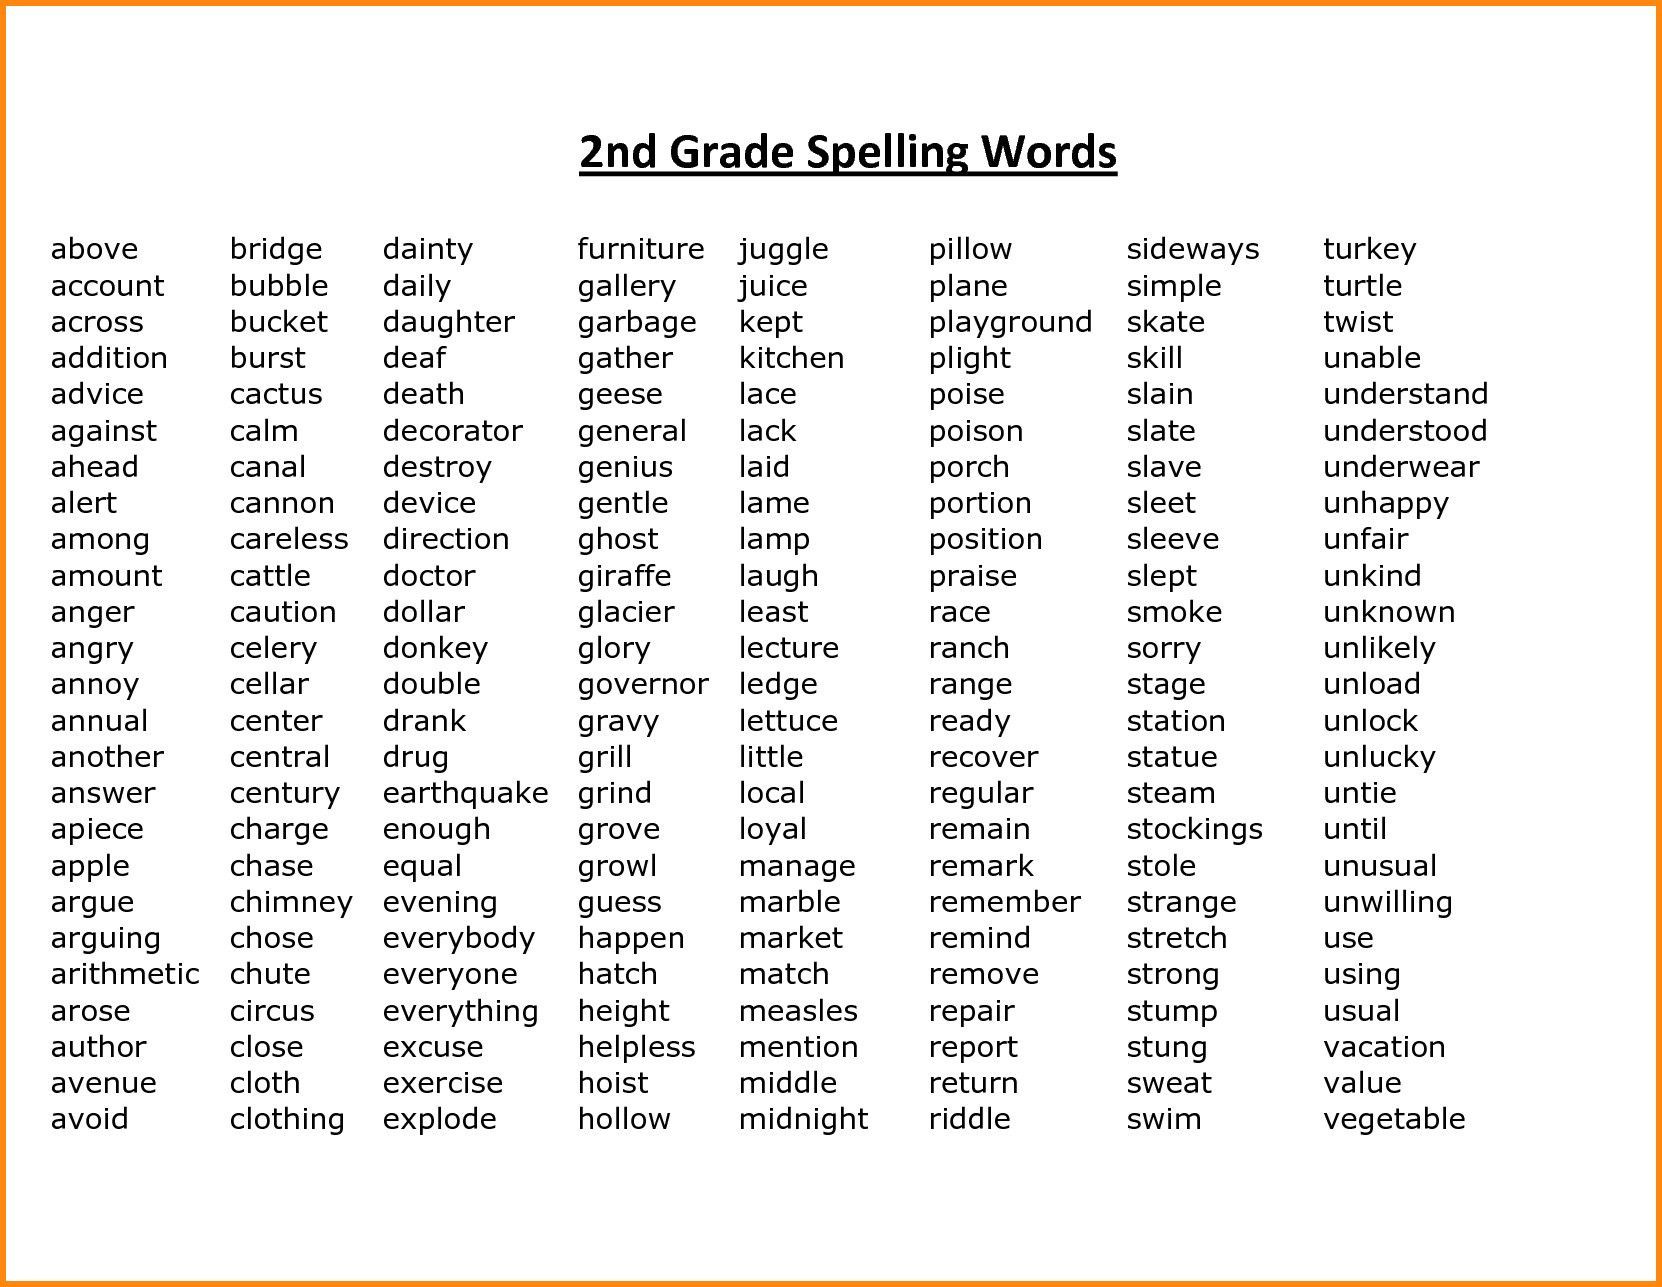 Second Grade Spelling Worksheets 2nd Grade Spelling Words Best Coloring Pages for Kids In